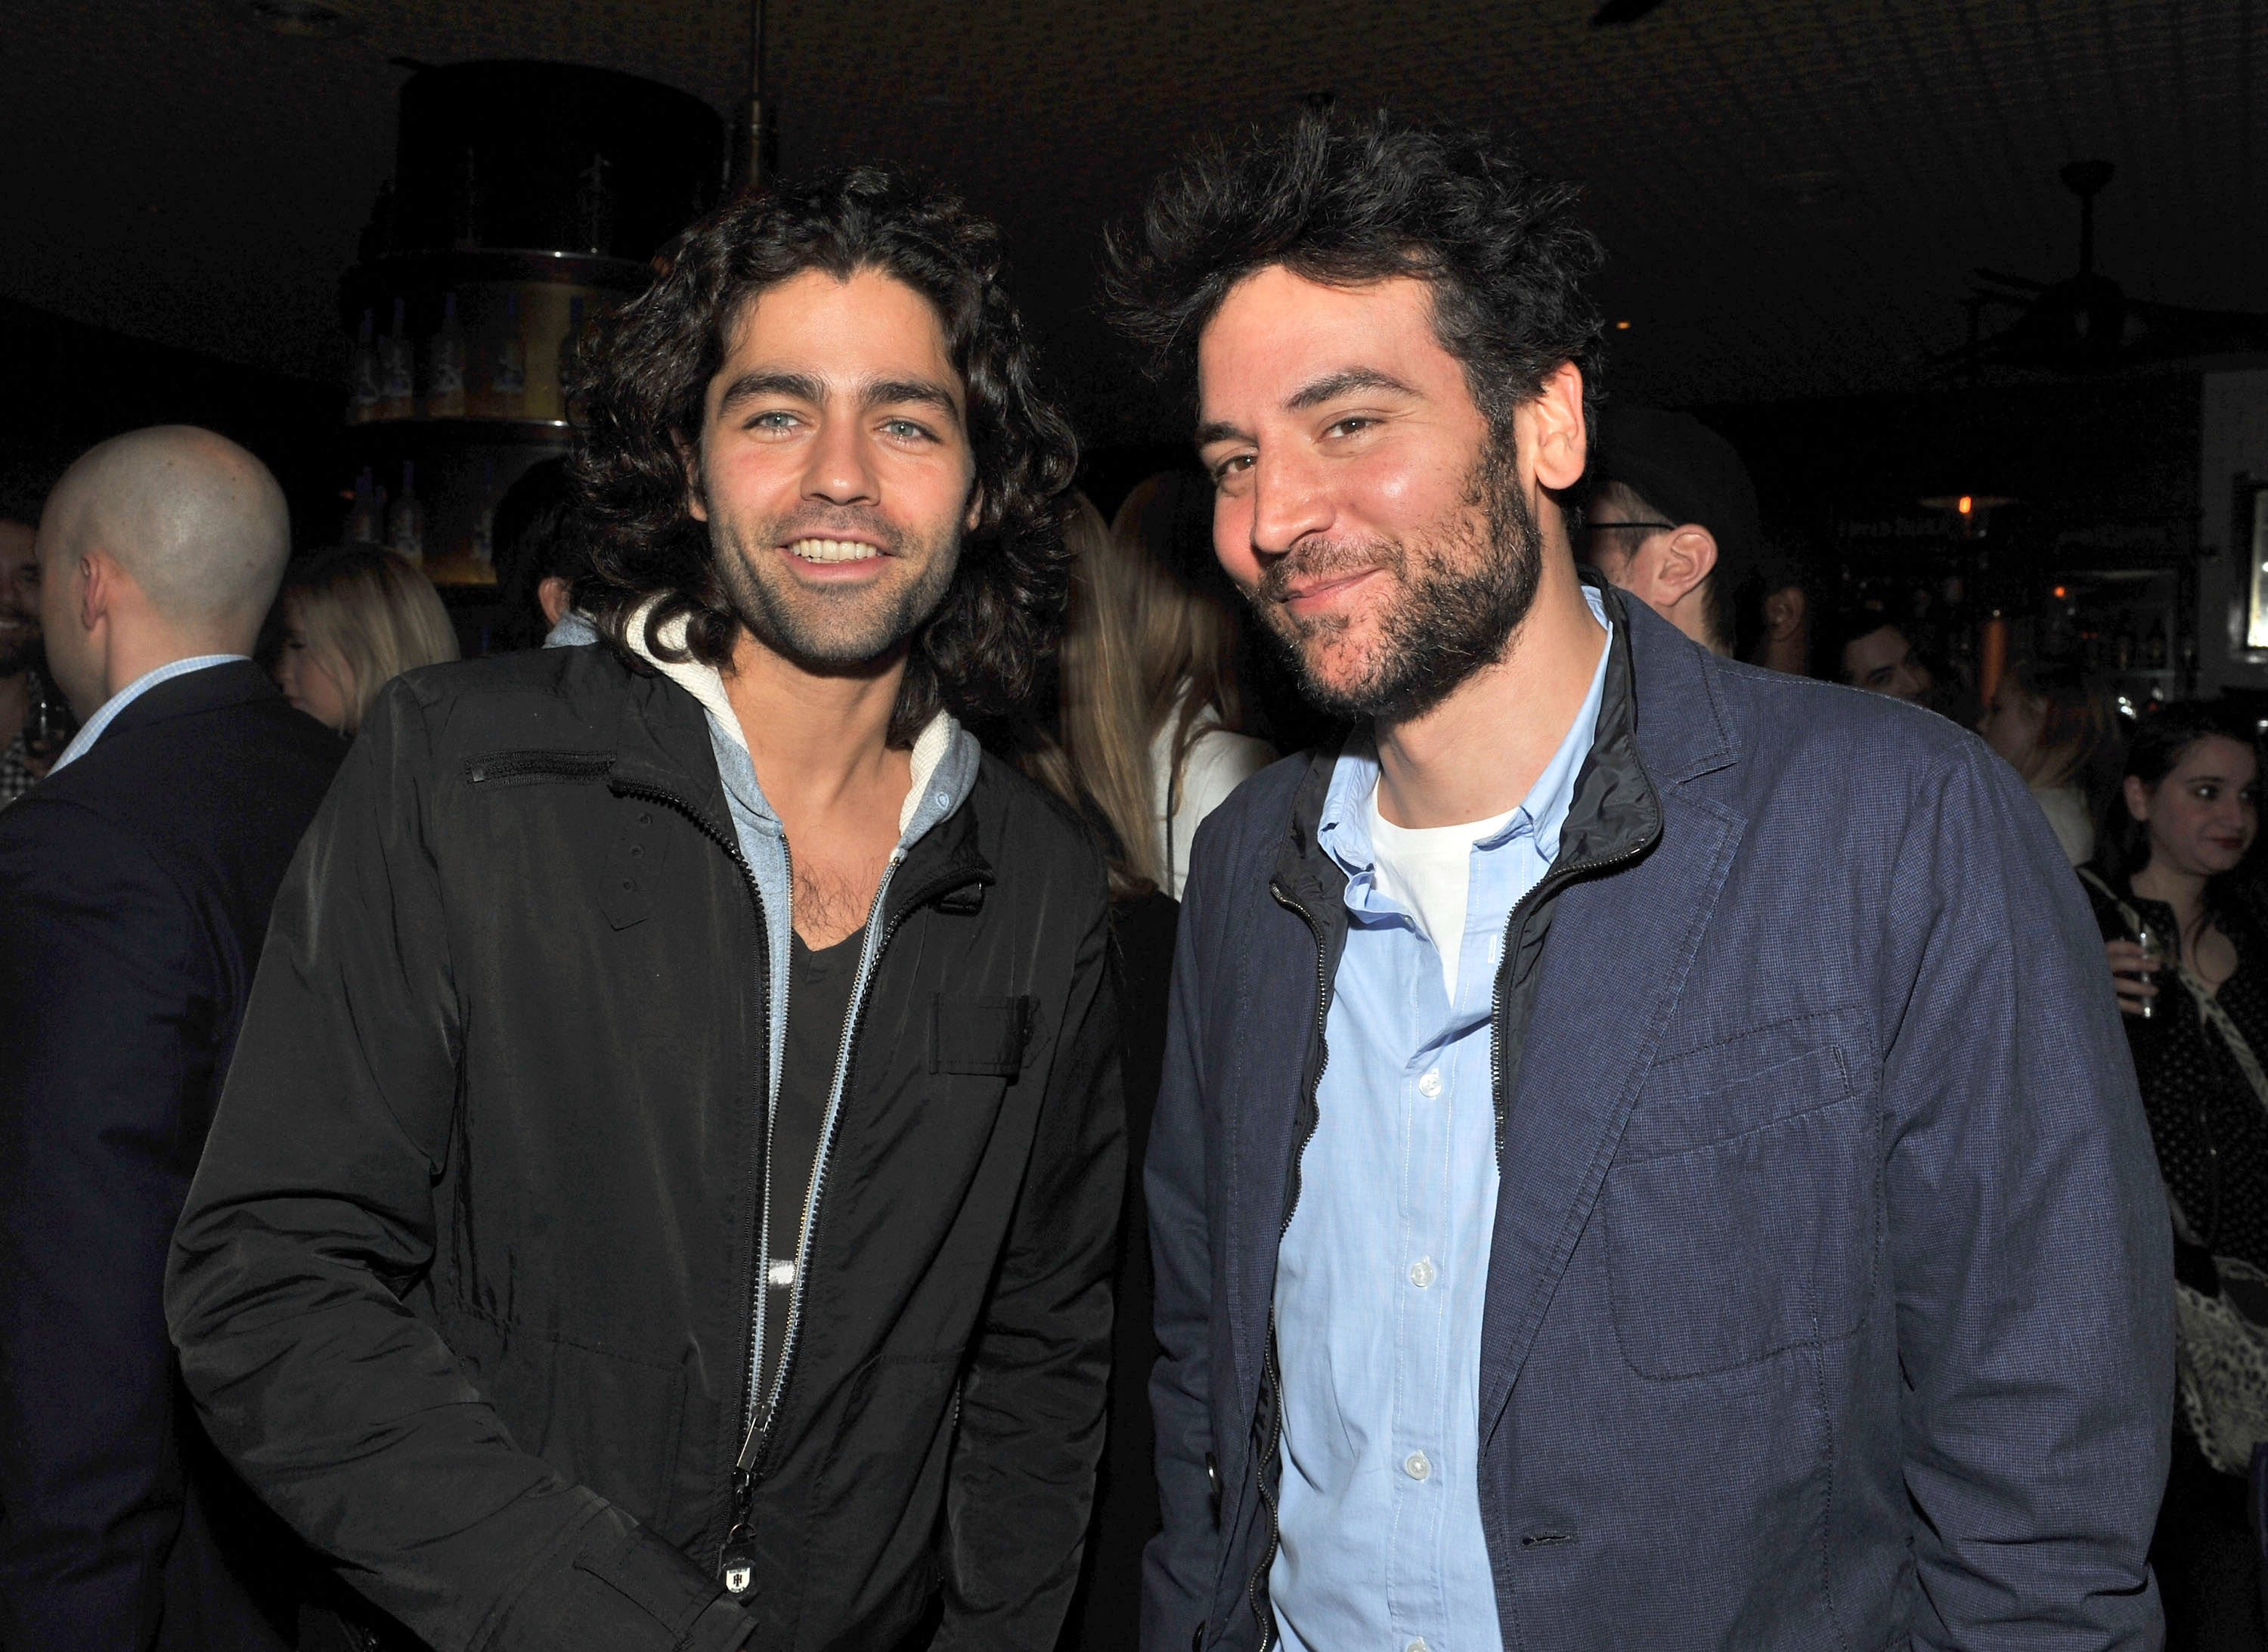 Adrian Grenier and Josh Radnor teamed up for the screening of At Any Price.